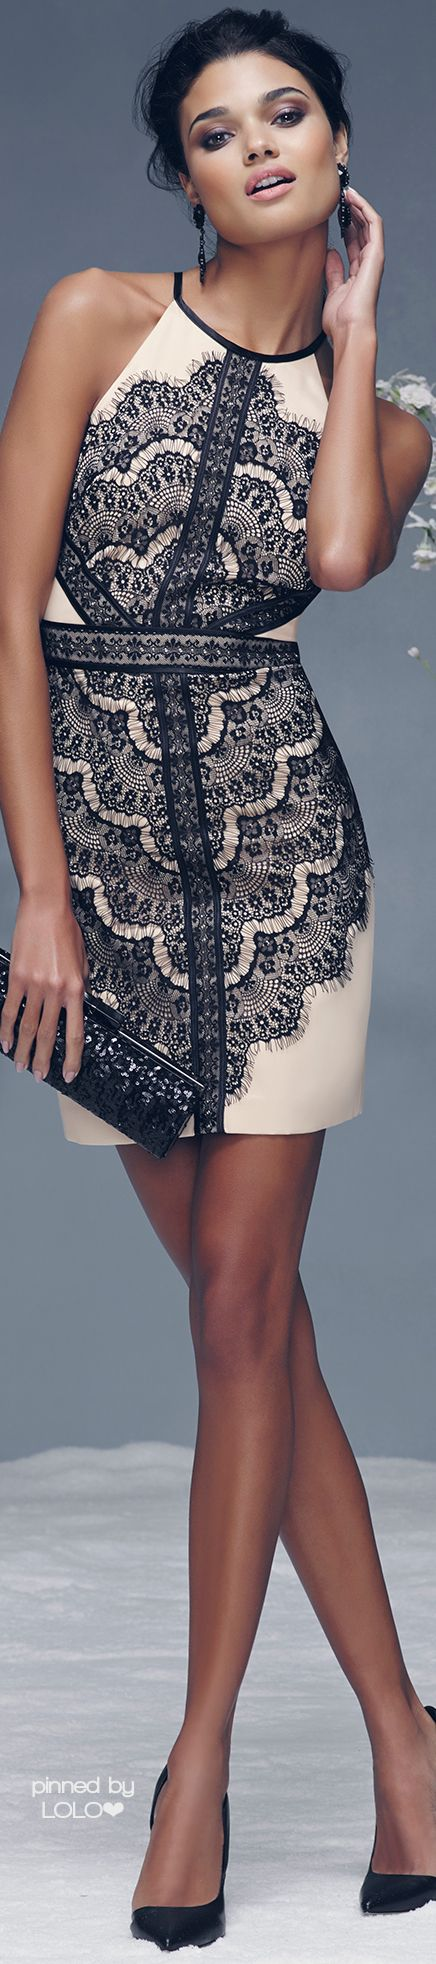 Bebe | The lace on this dress is beautiful